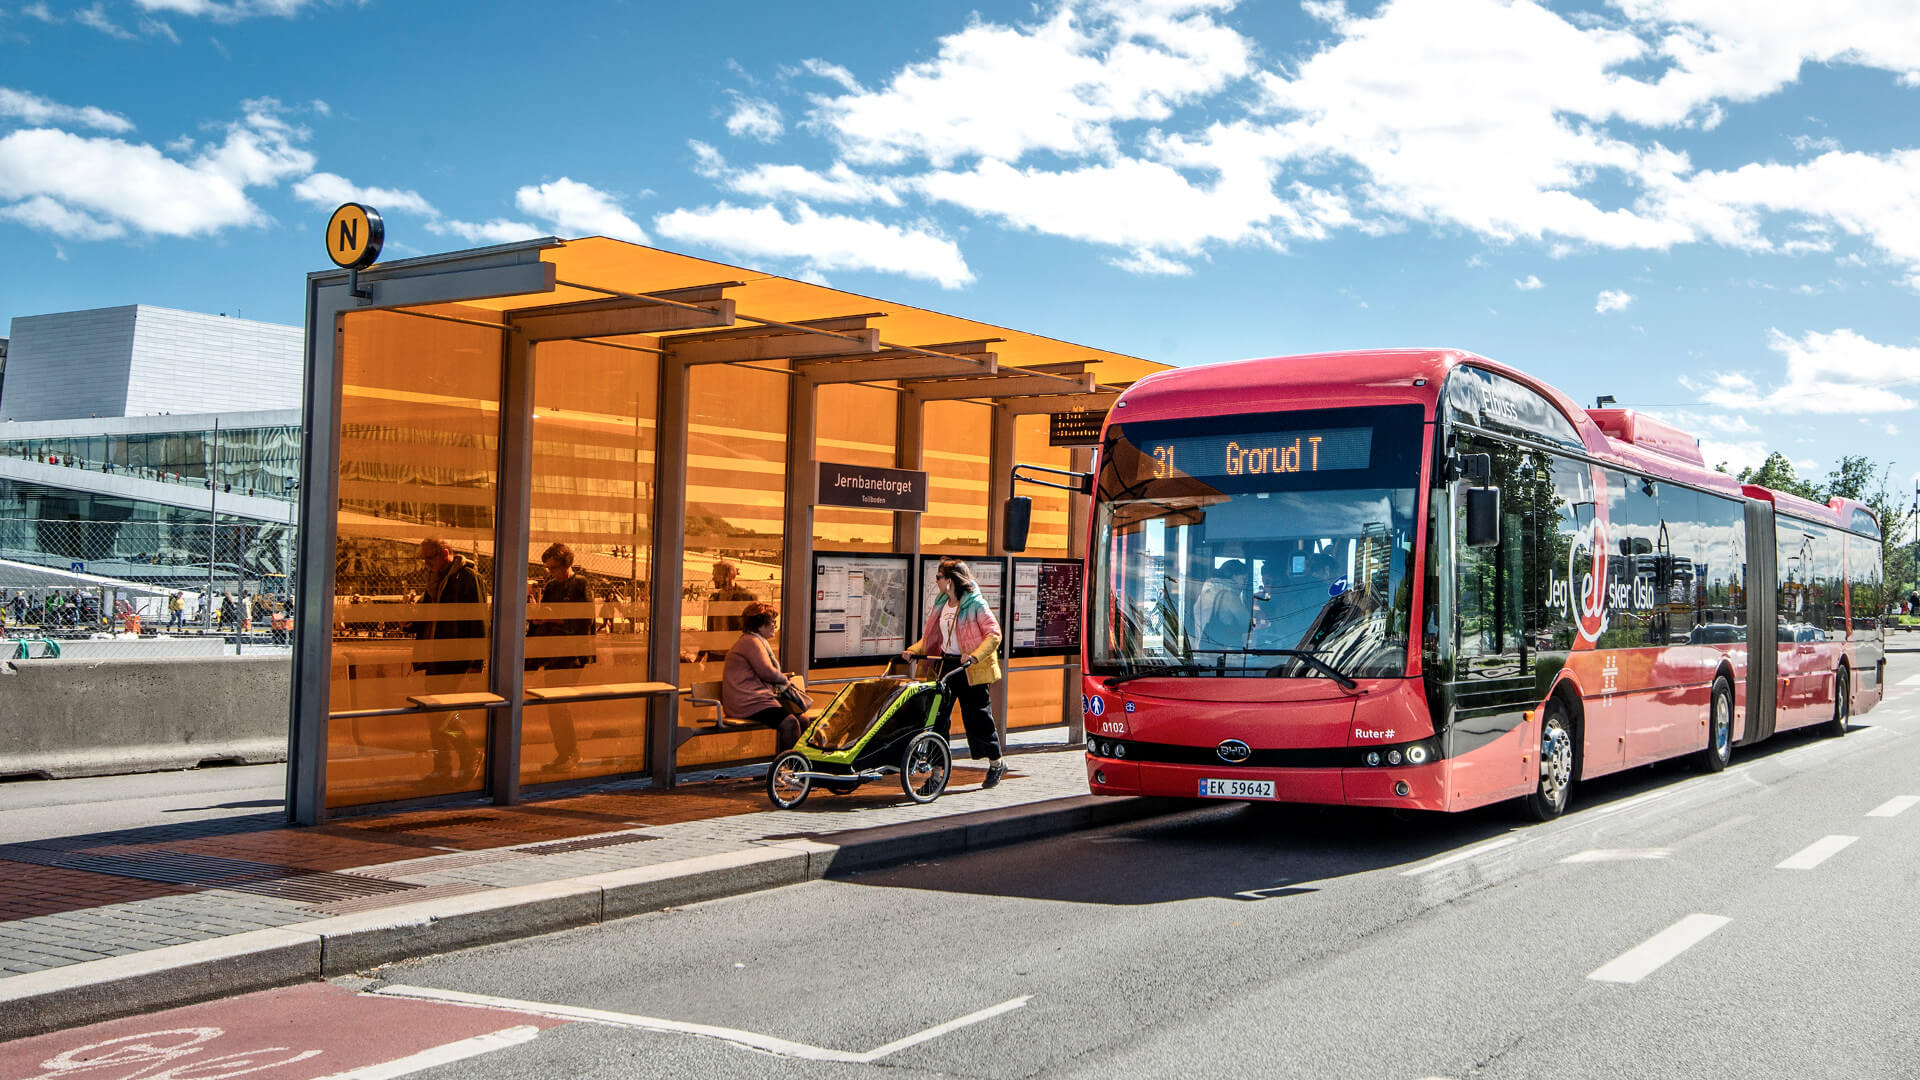 Reference BYD bus in Oslo